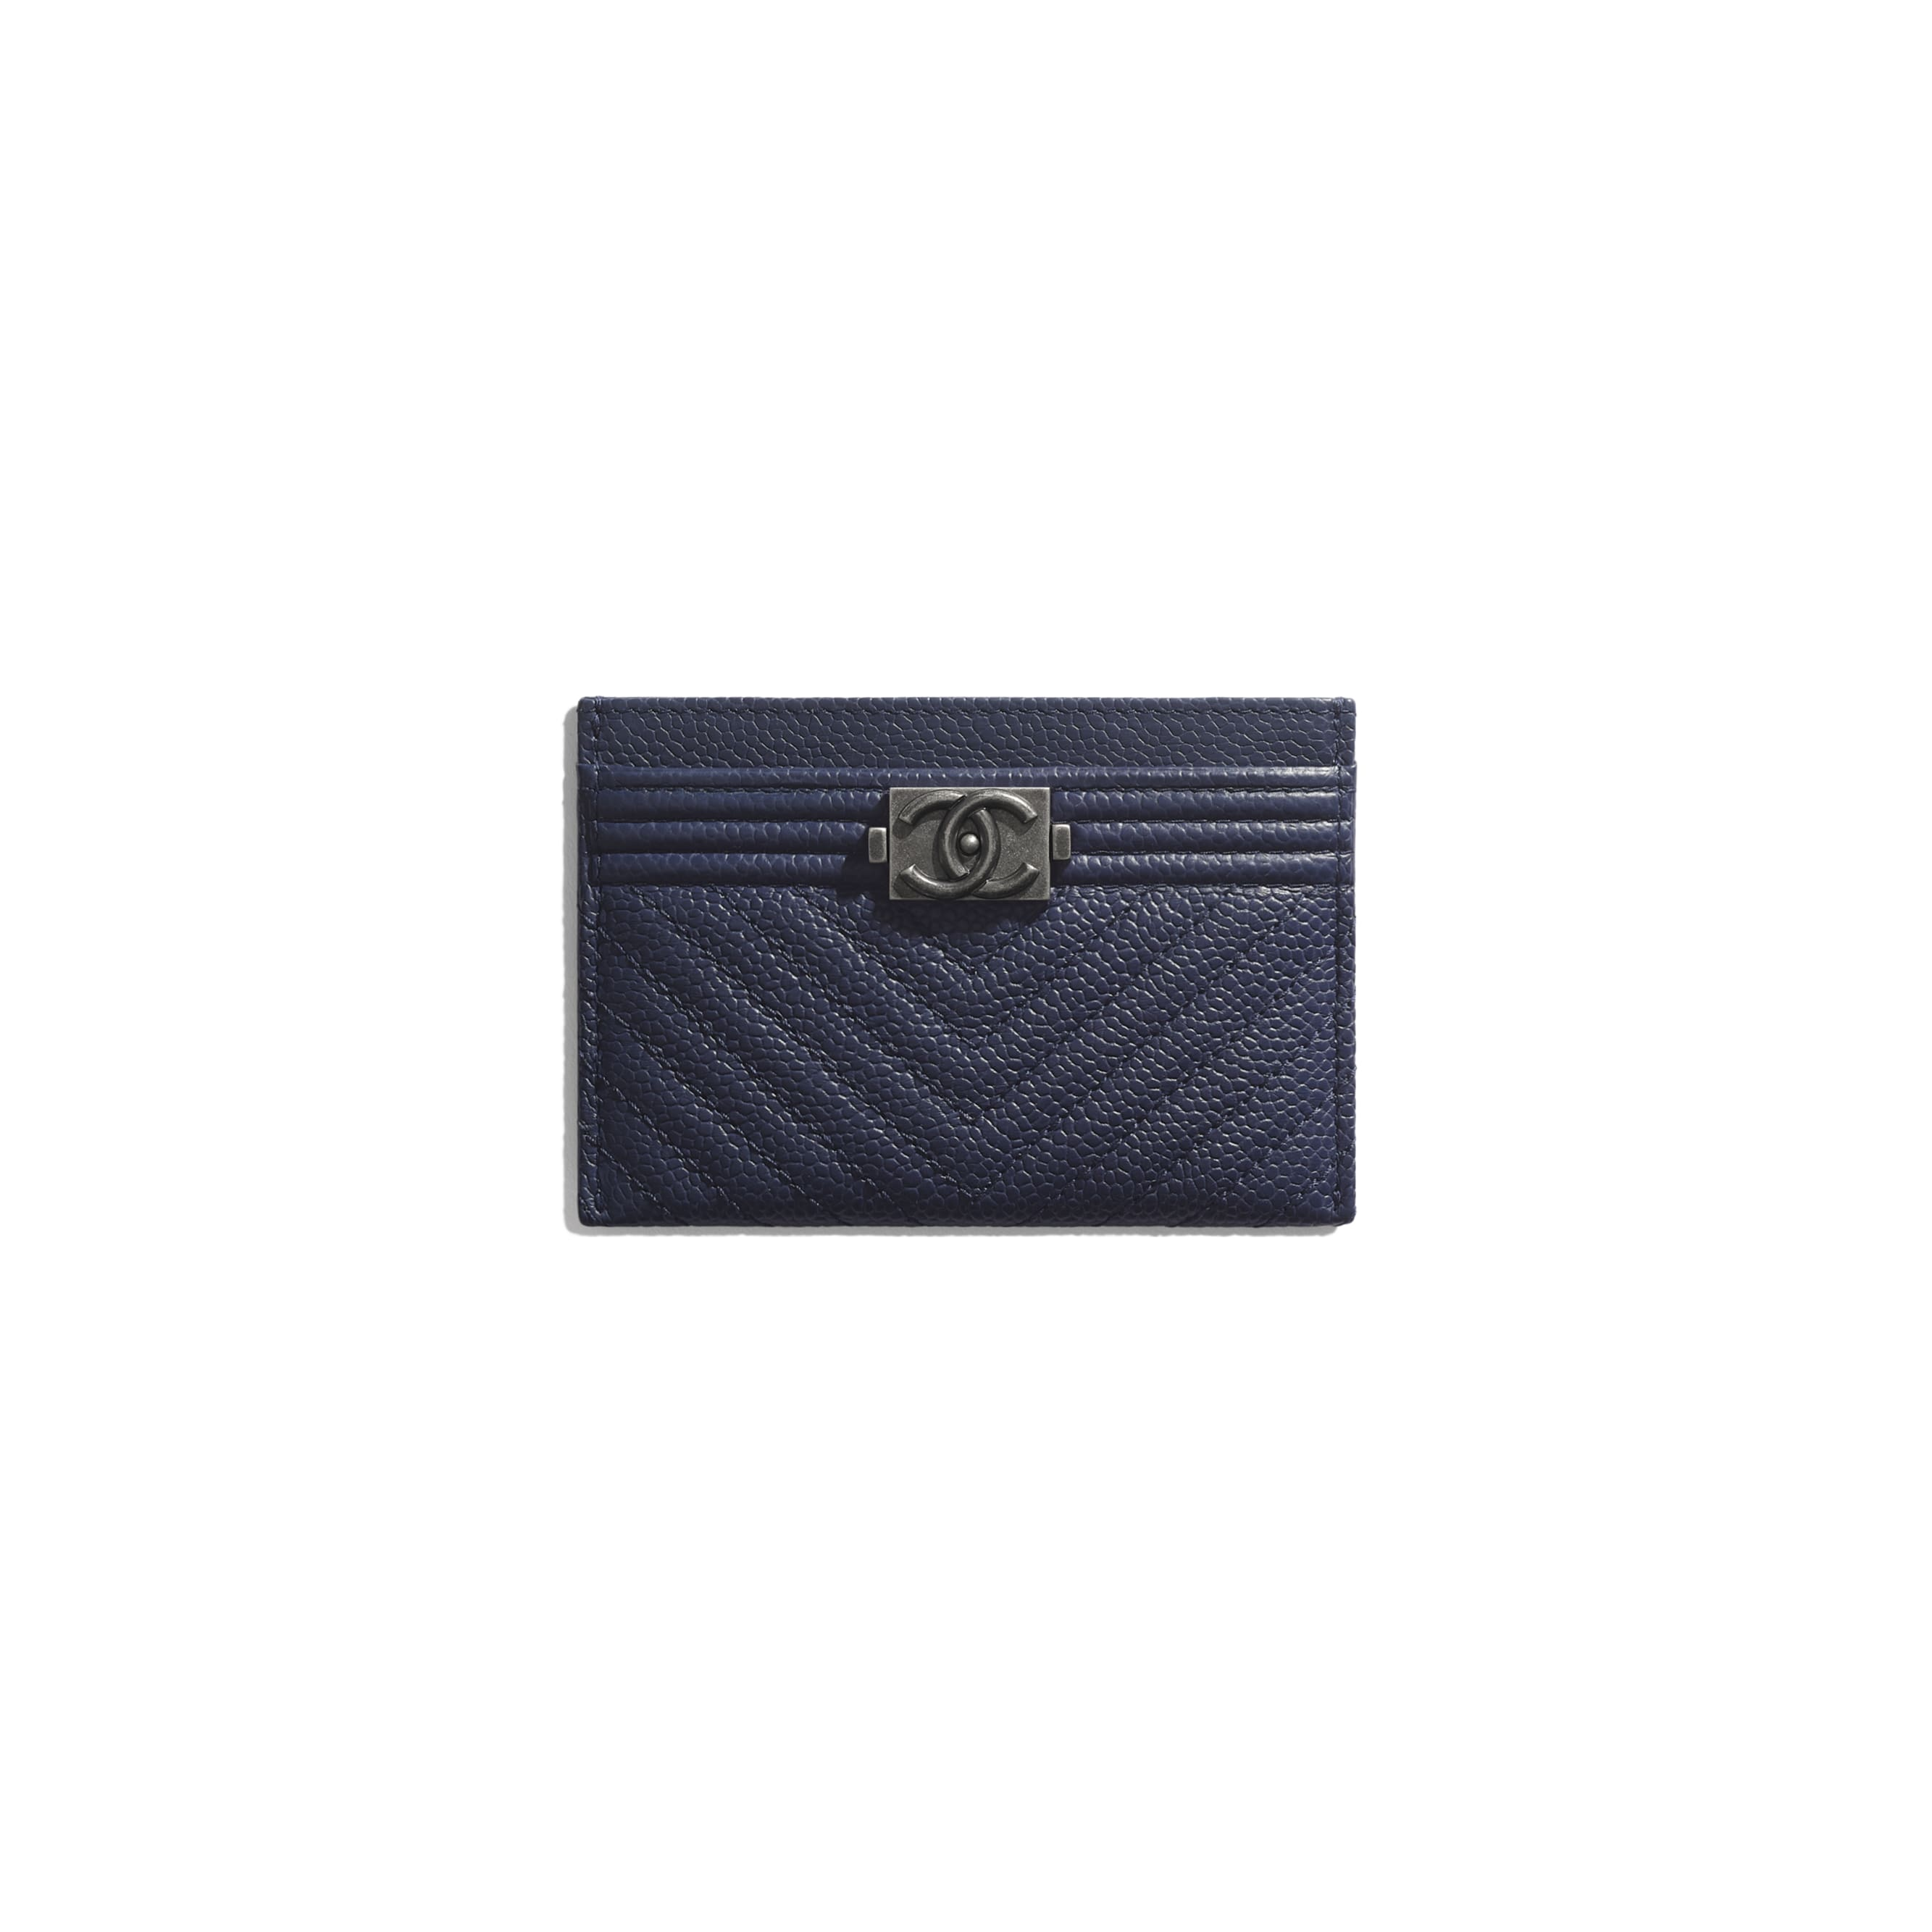 BOY CHANEL Card Holder - Navy Blue - Grained Calfskin & Ruthenium-Finish Metal - Default view - see standard sized version